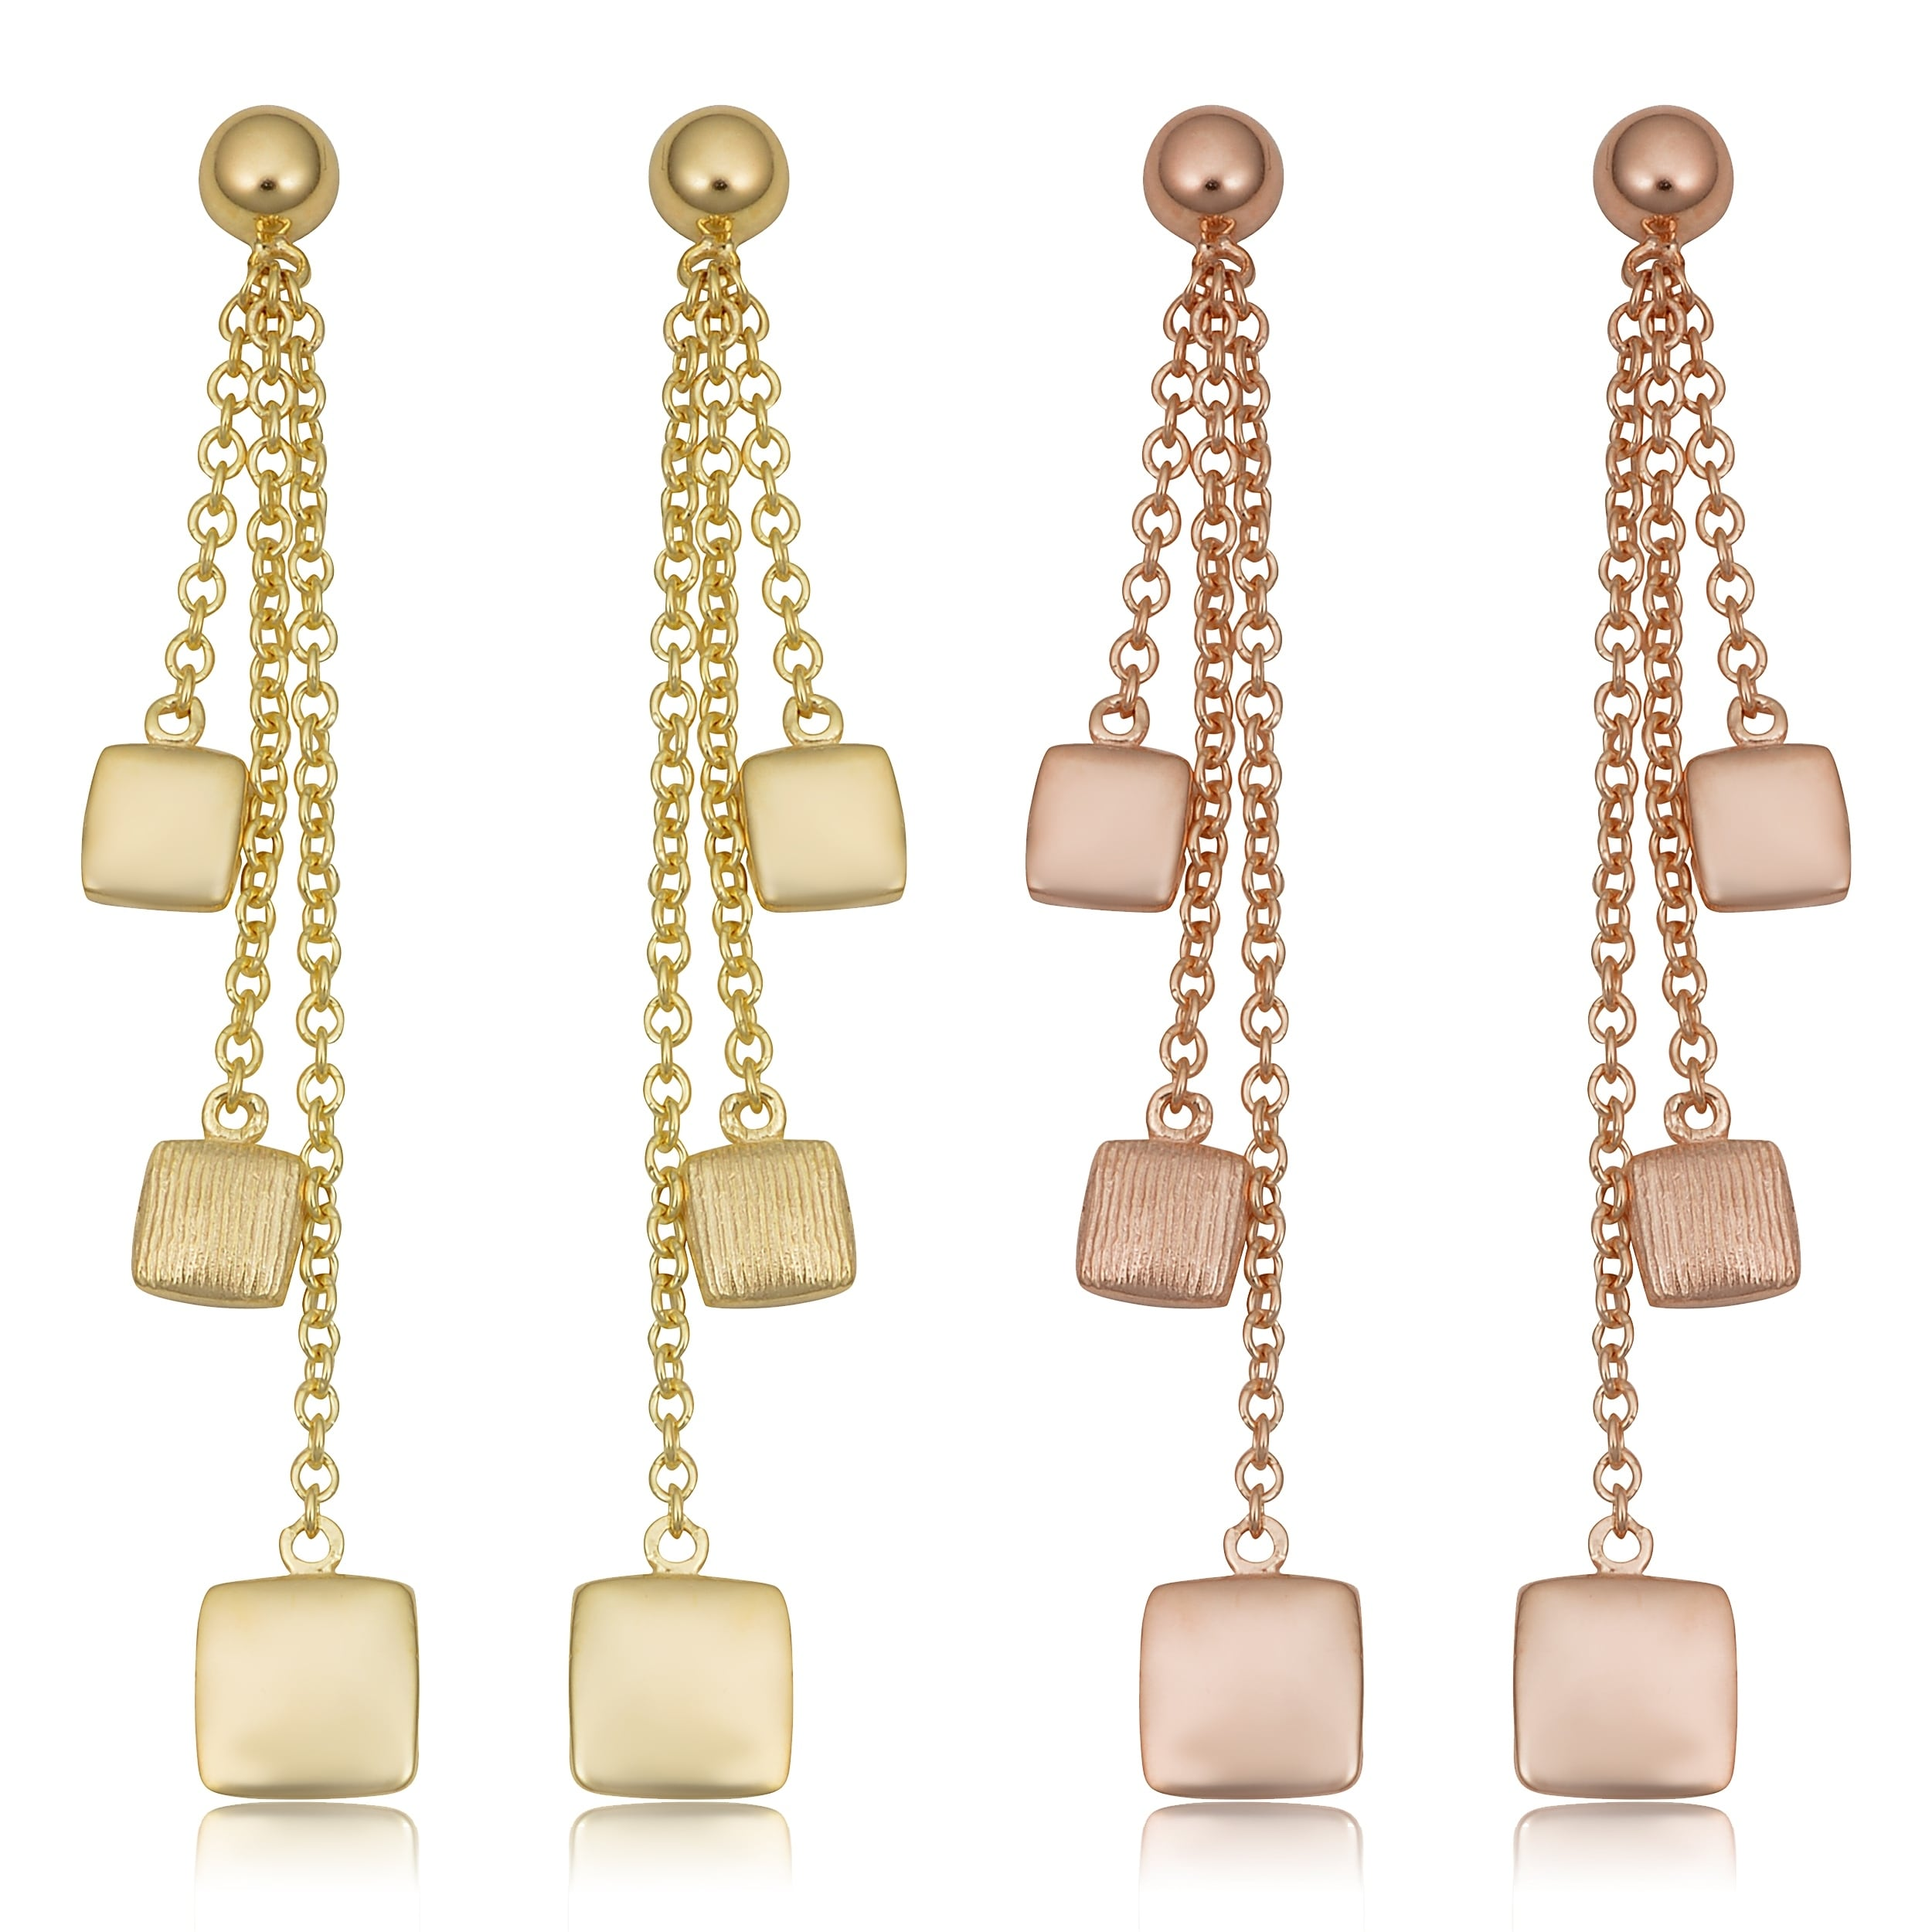 daa5f436e Shop 14k Yellow or Rose Gold Polished Textured Square Drop earrings ...